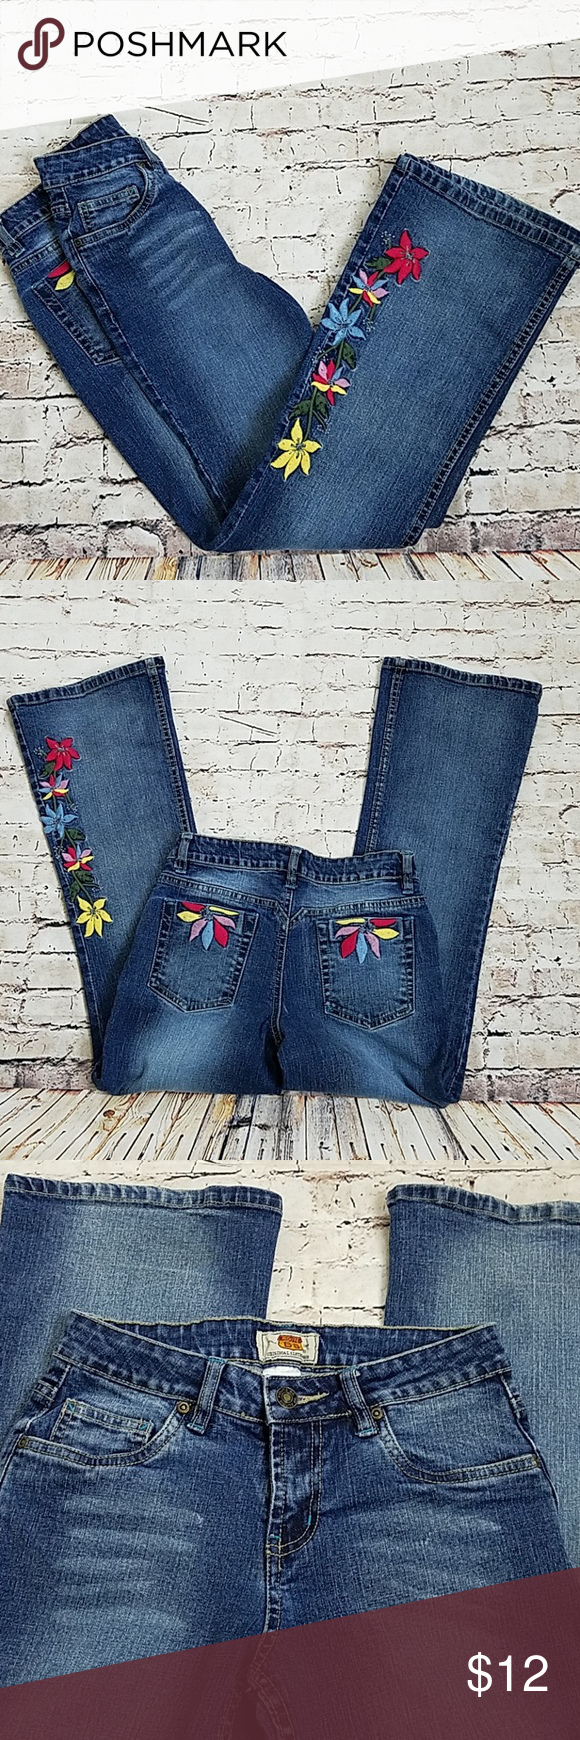 070f6a6a5b Route 66 Girl's embroidered flare jeans size 12 Very cute girls flare jeans  with mild distressing